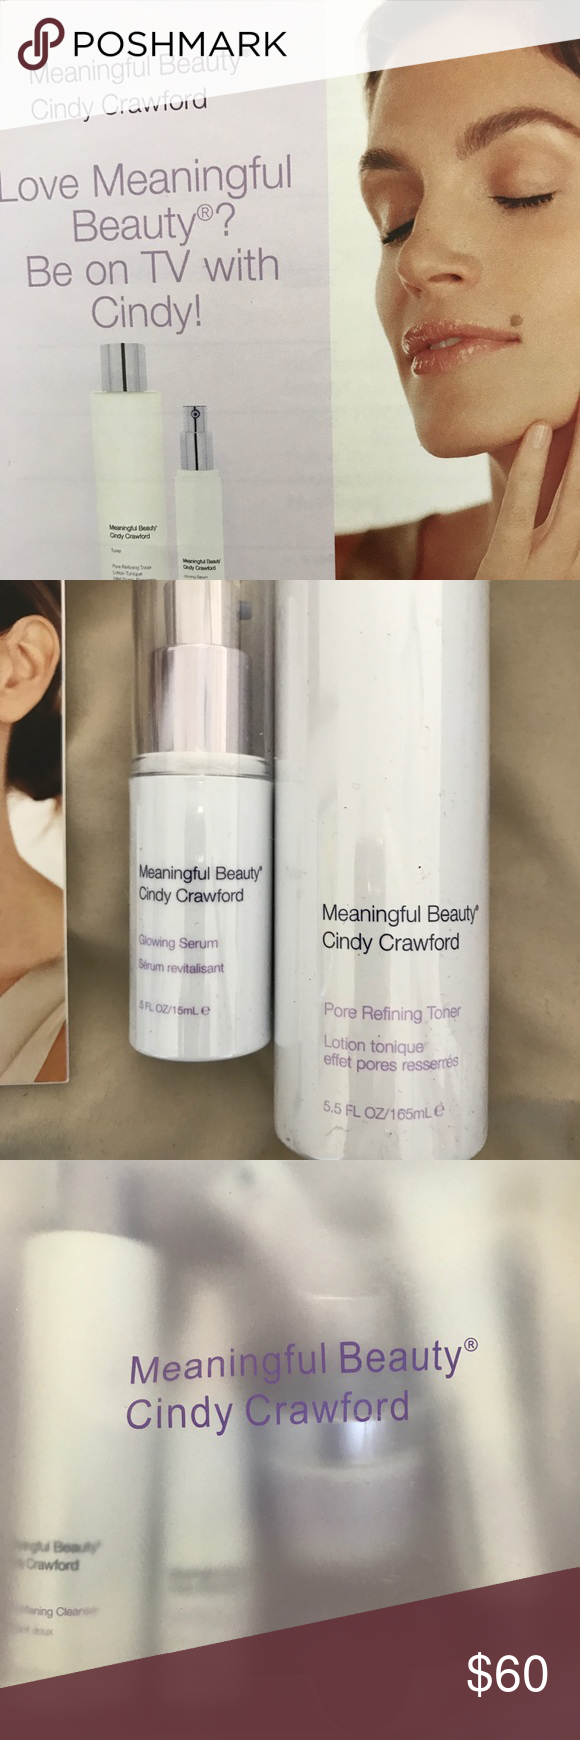 Cindy Crawford meaningful beauty kit Brandnew in the box